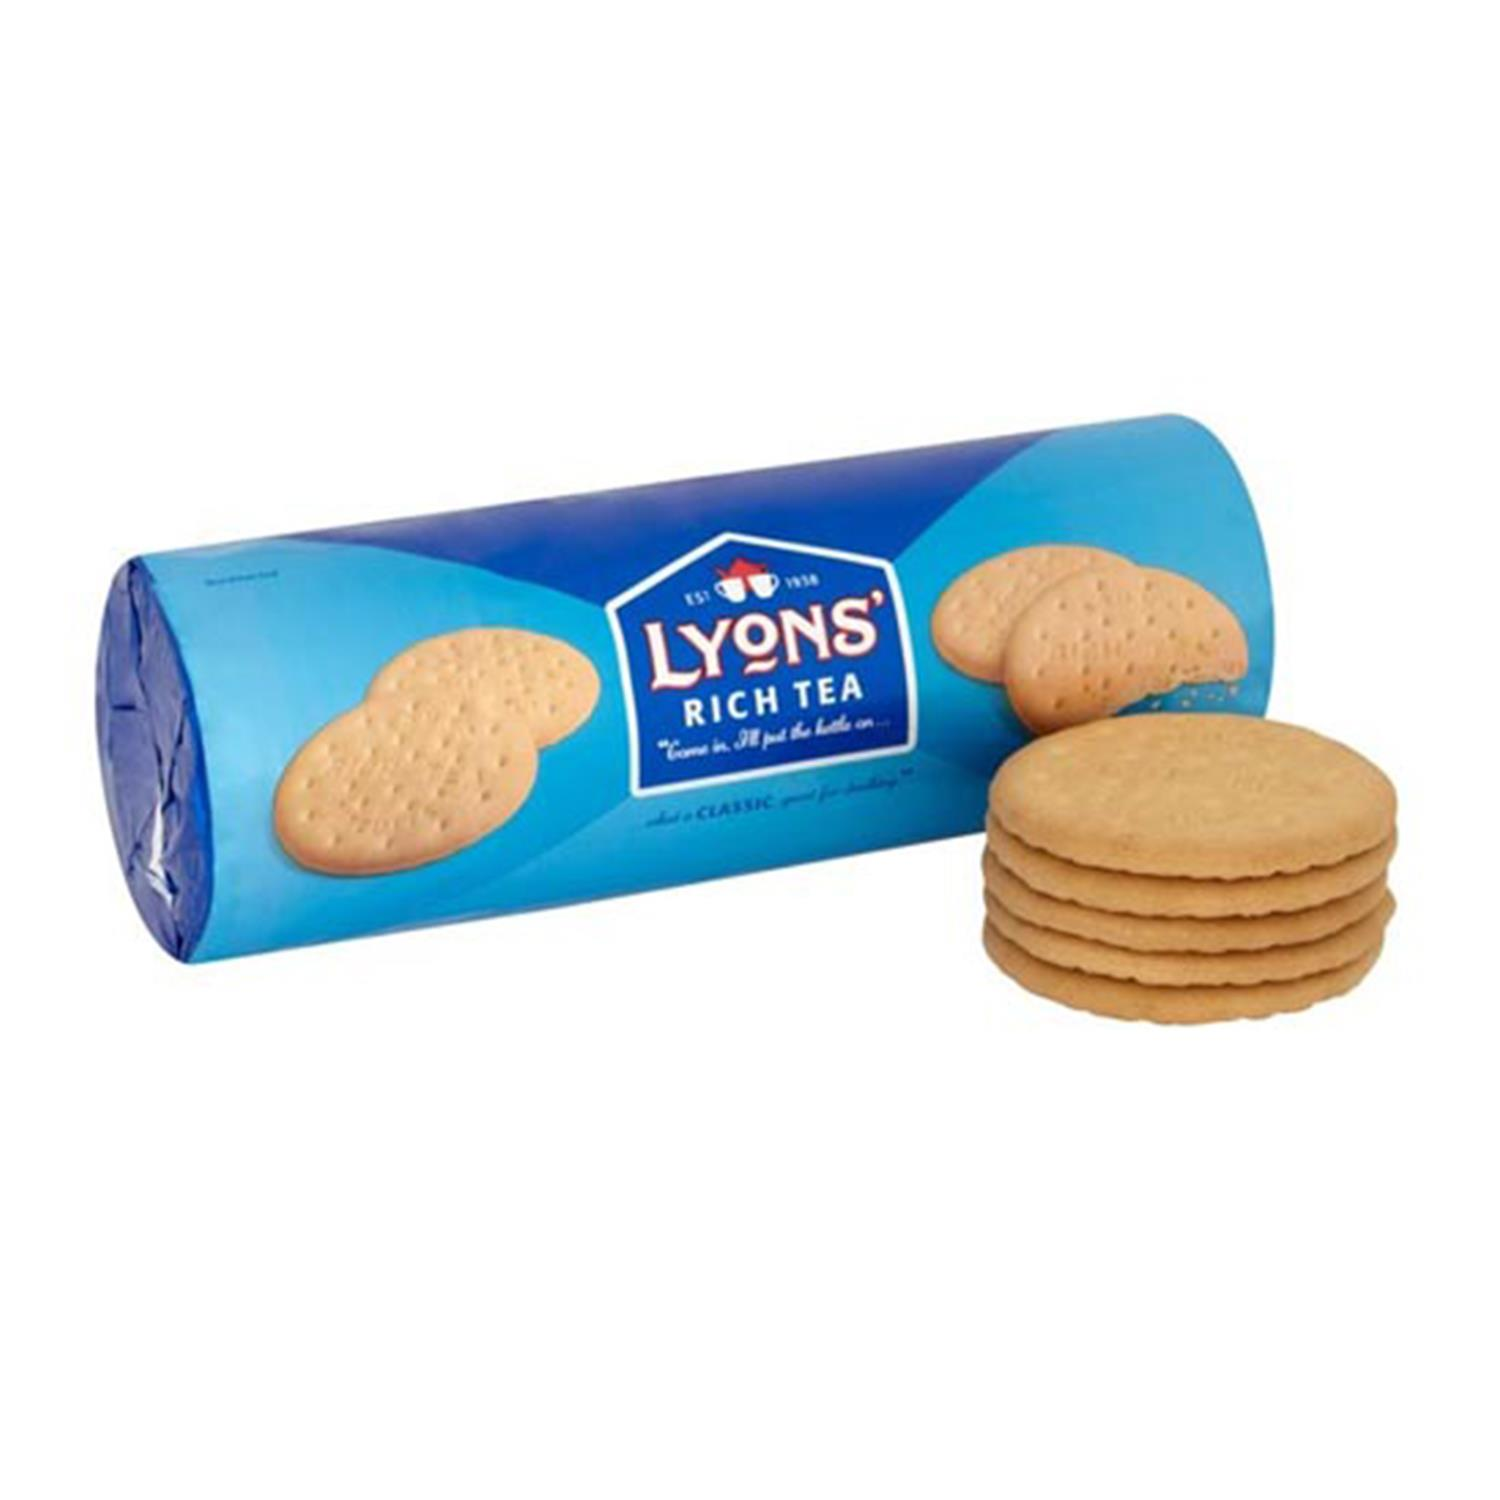 thumbnail 29 - Lyons Rich Tea Biscuits 300g, Great for a morning or afternoon snack